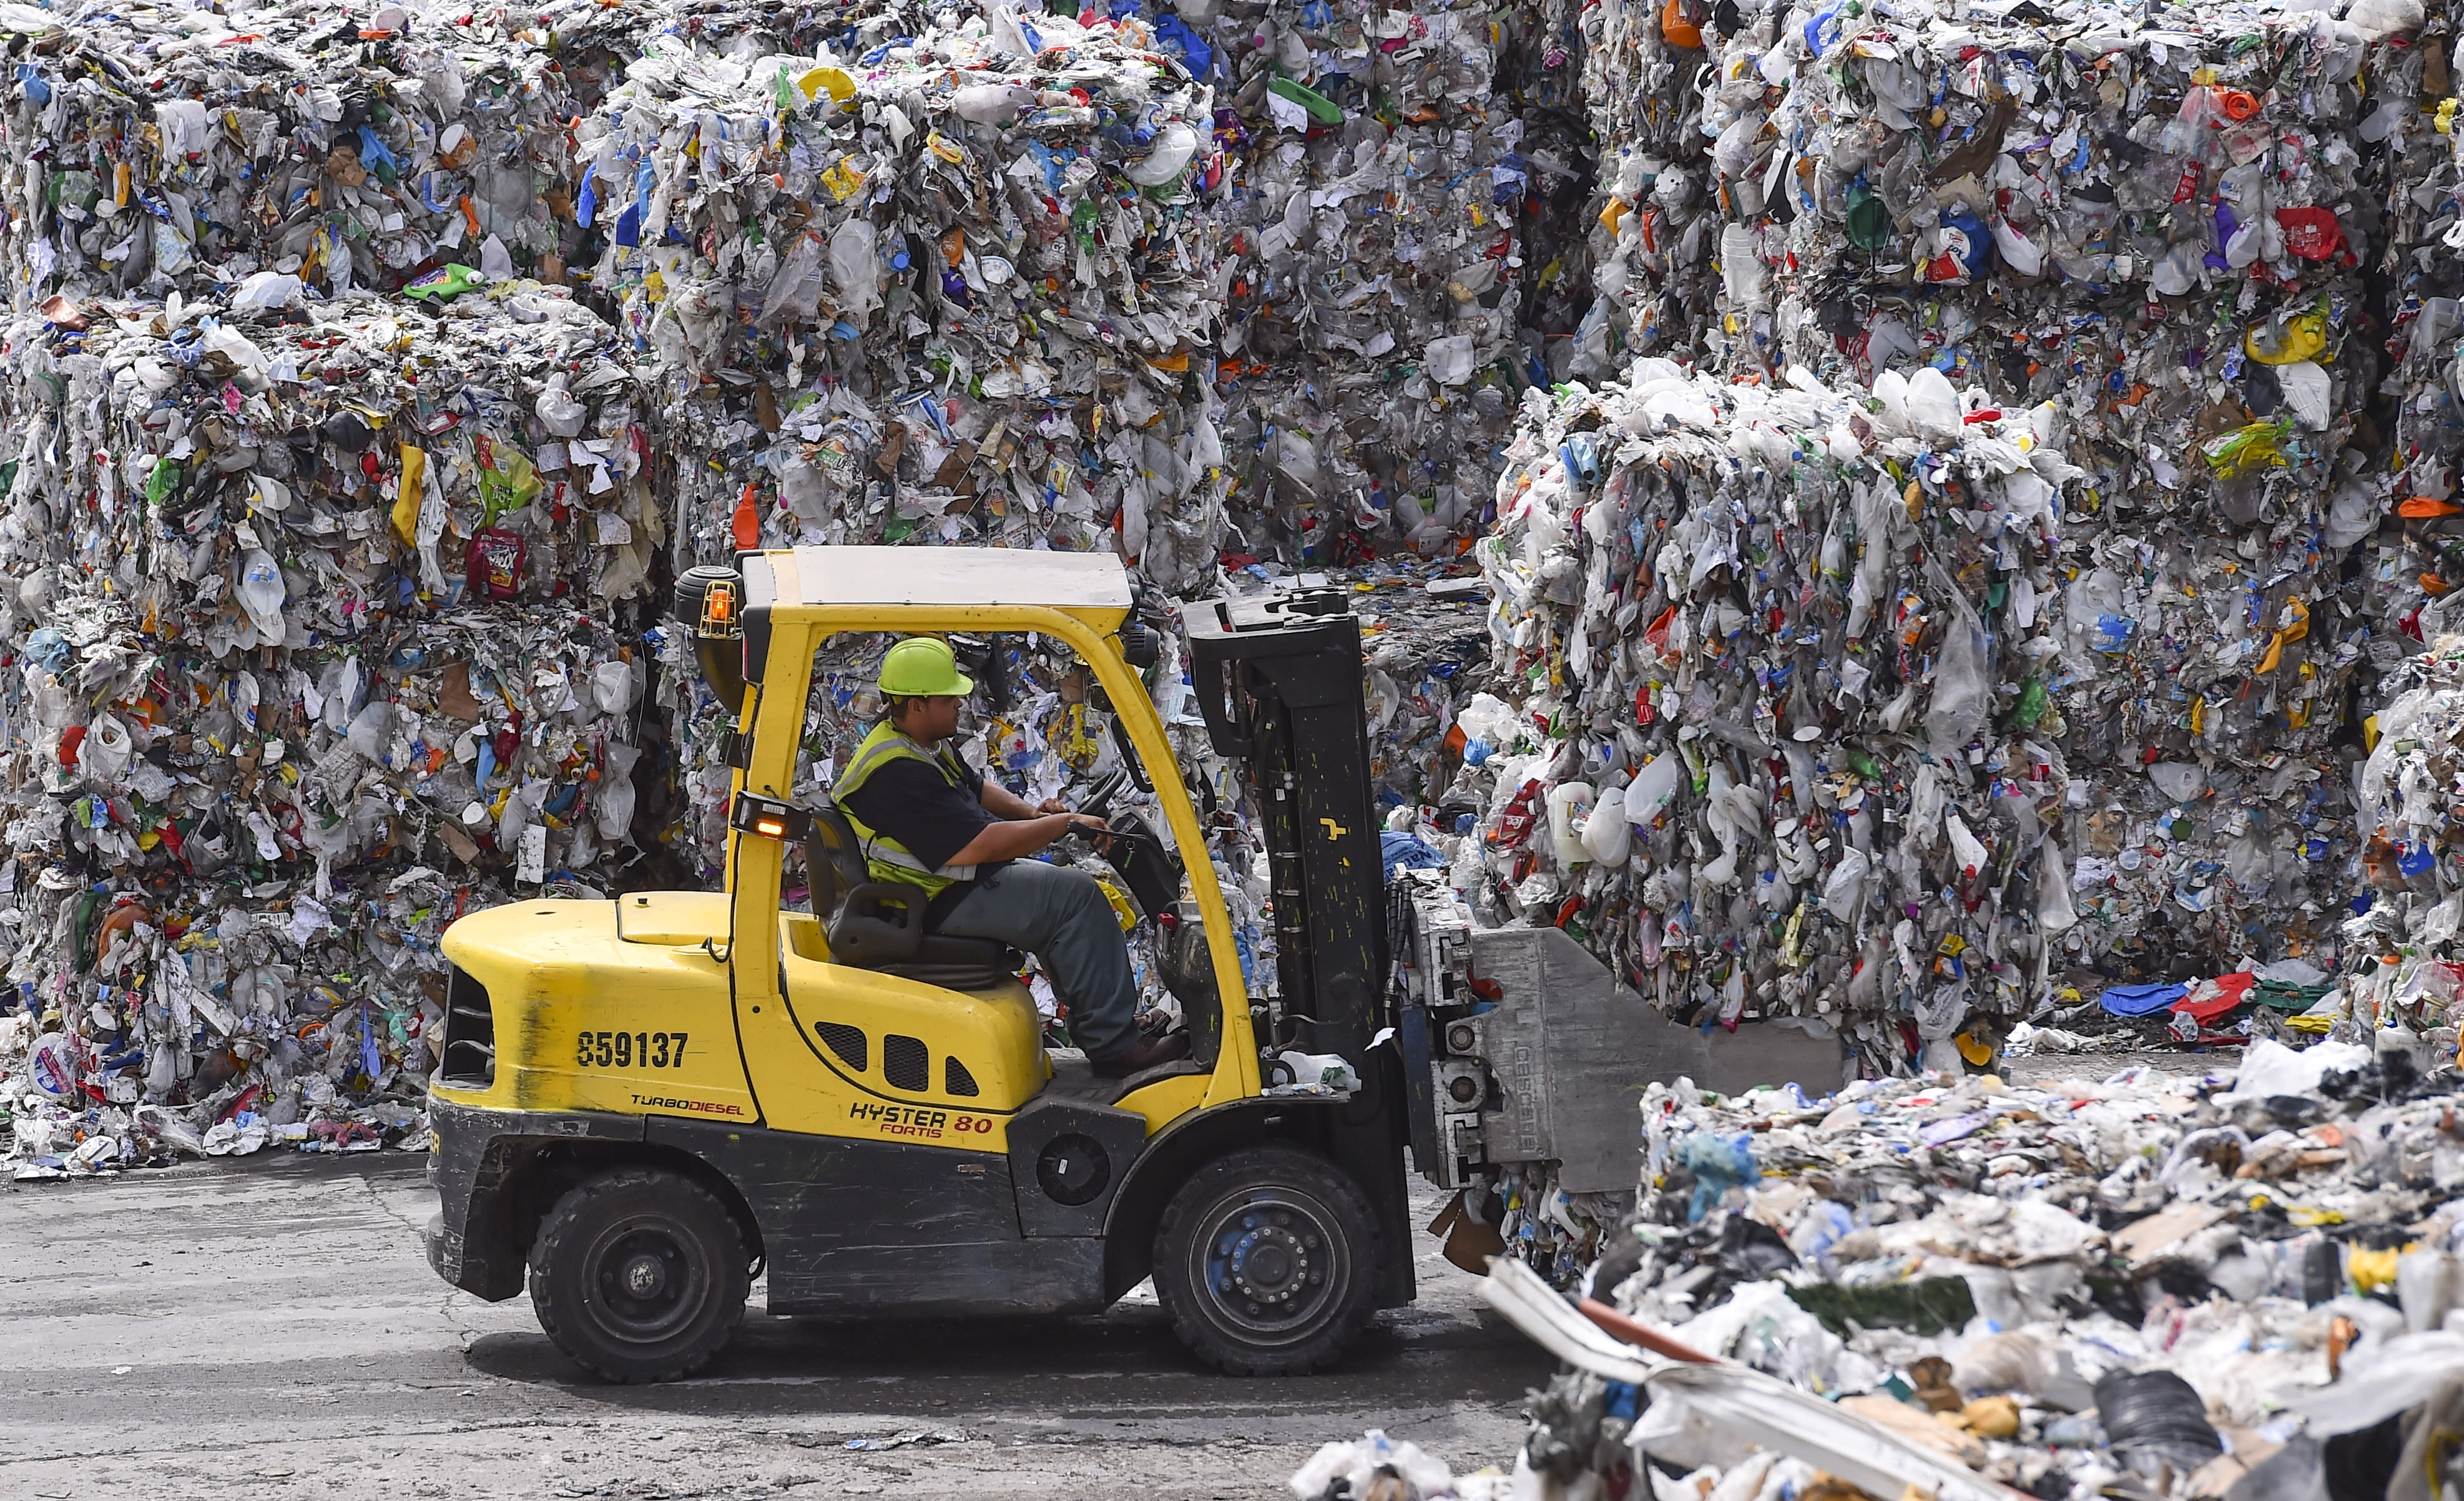 Why packaging waste is big business for this company